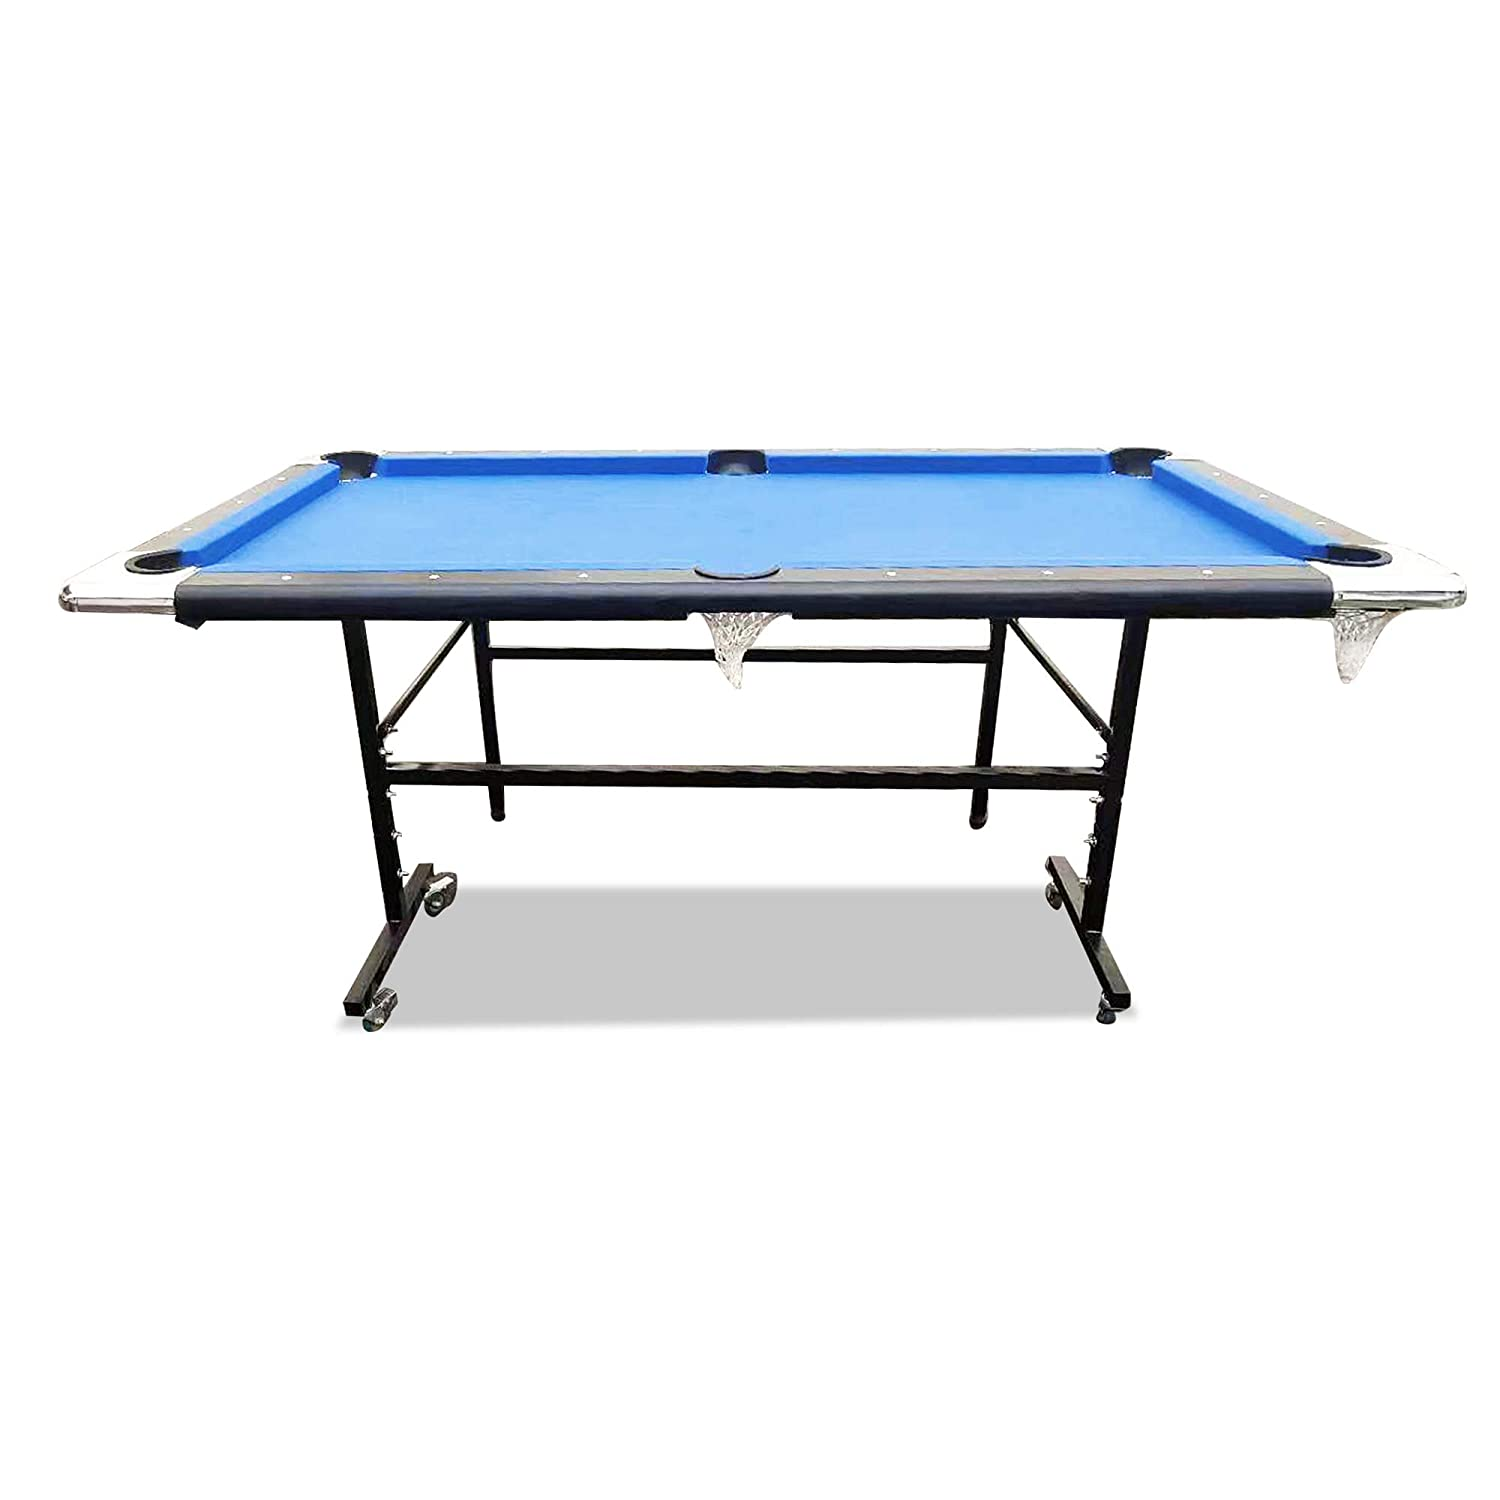 Stupendous Tr Sports 6 Ft Pool Table Timber Foldable Billiard Table Childrens Fold Away Snooker Table Easy Storage Space Saver Game Table With Free Accessories Beutiful Home Inspiration Xortanetmahrainfo